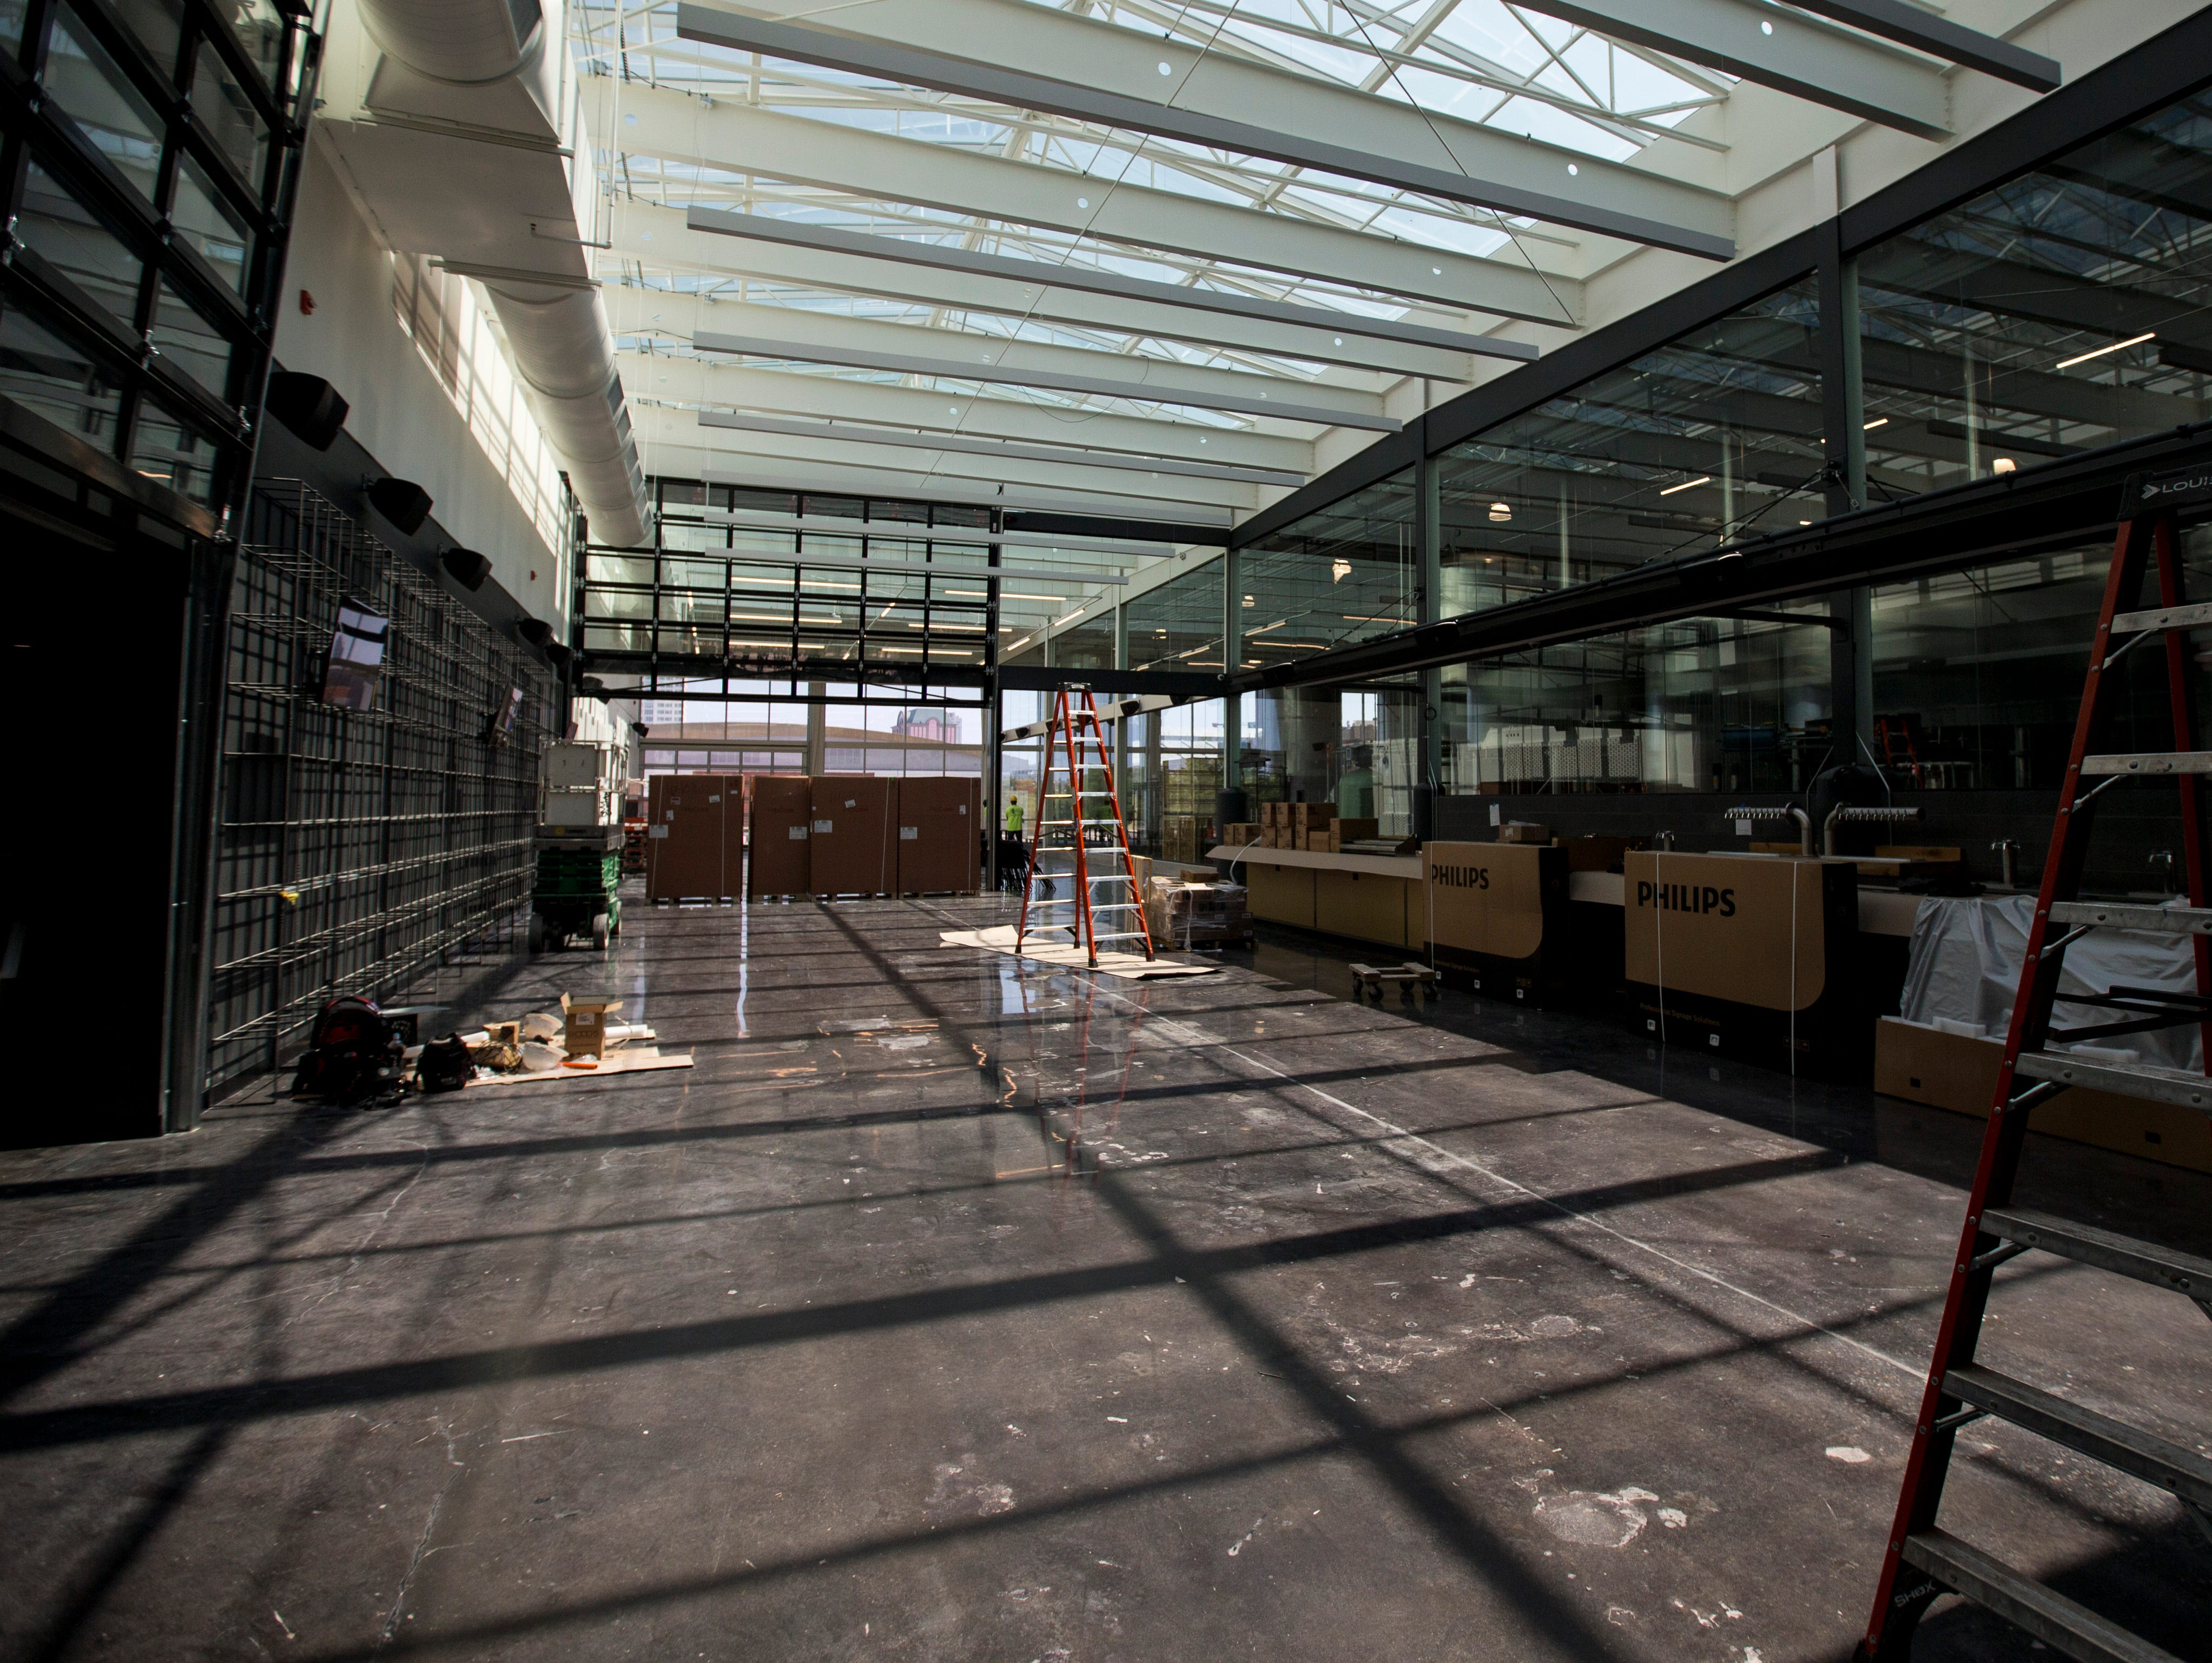 Workers will have Glass + Griddle, the restaurant and beer hall in the building shared by MKE Brewing, ready for customers on Aug. 29.